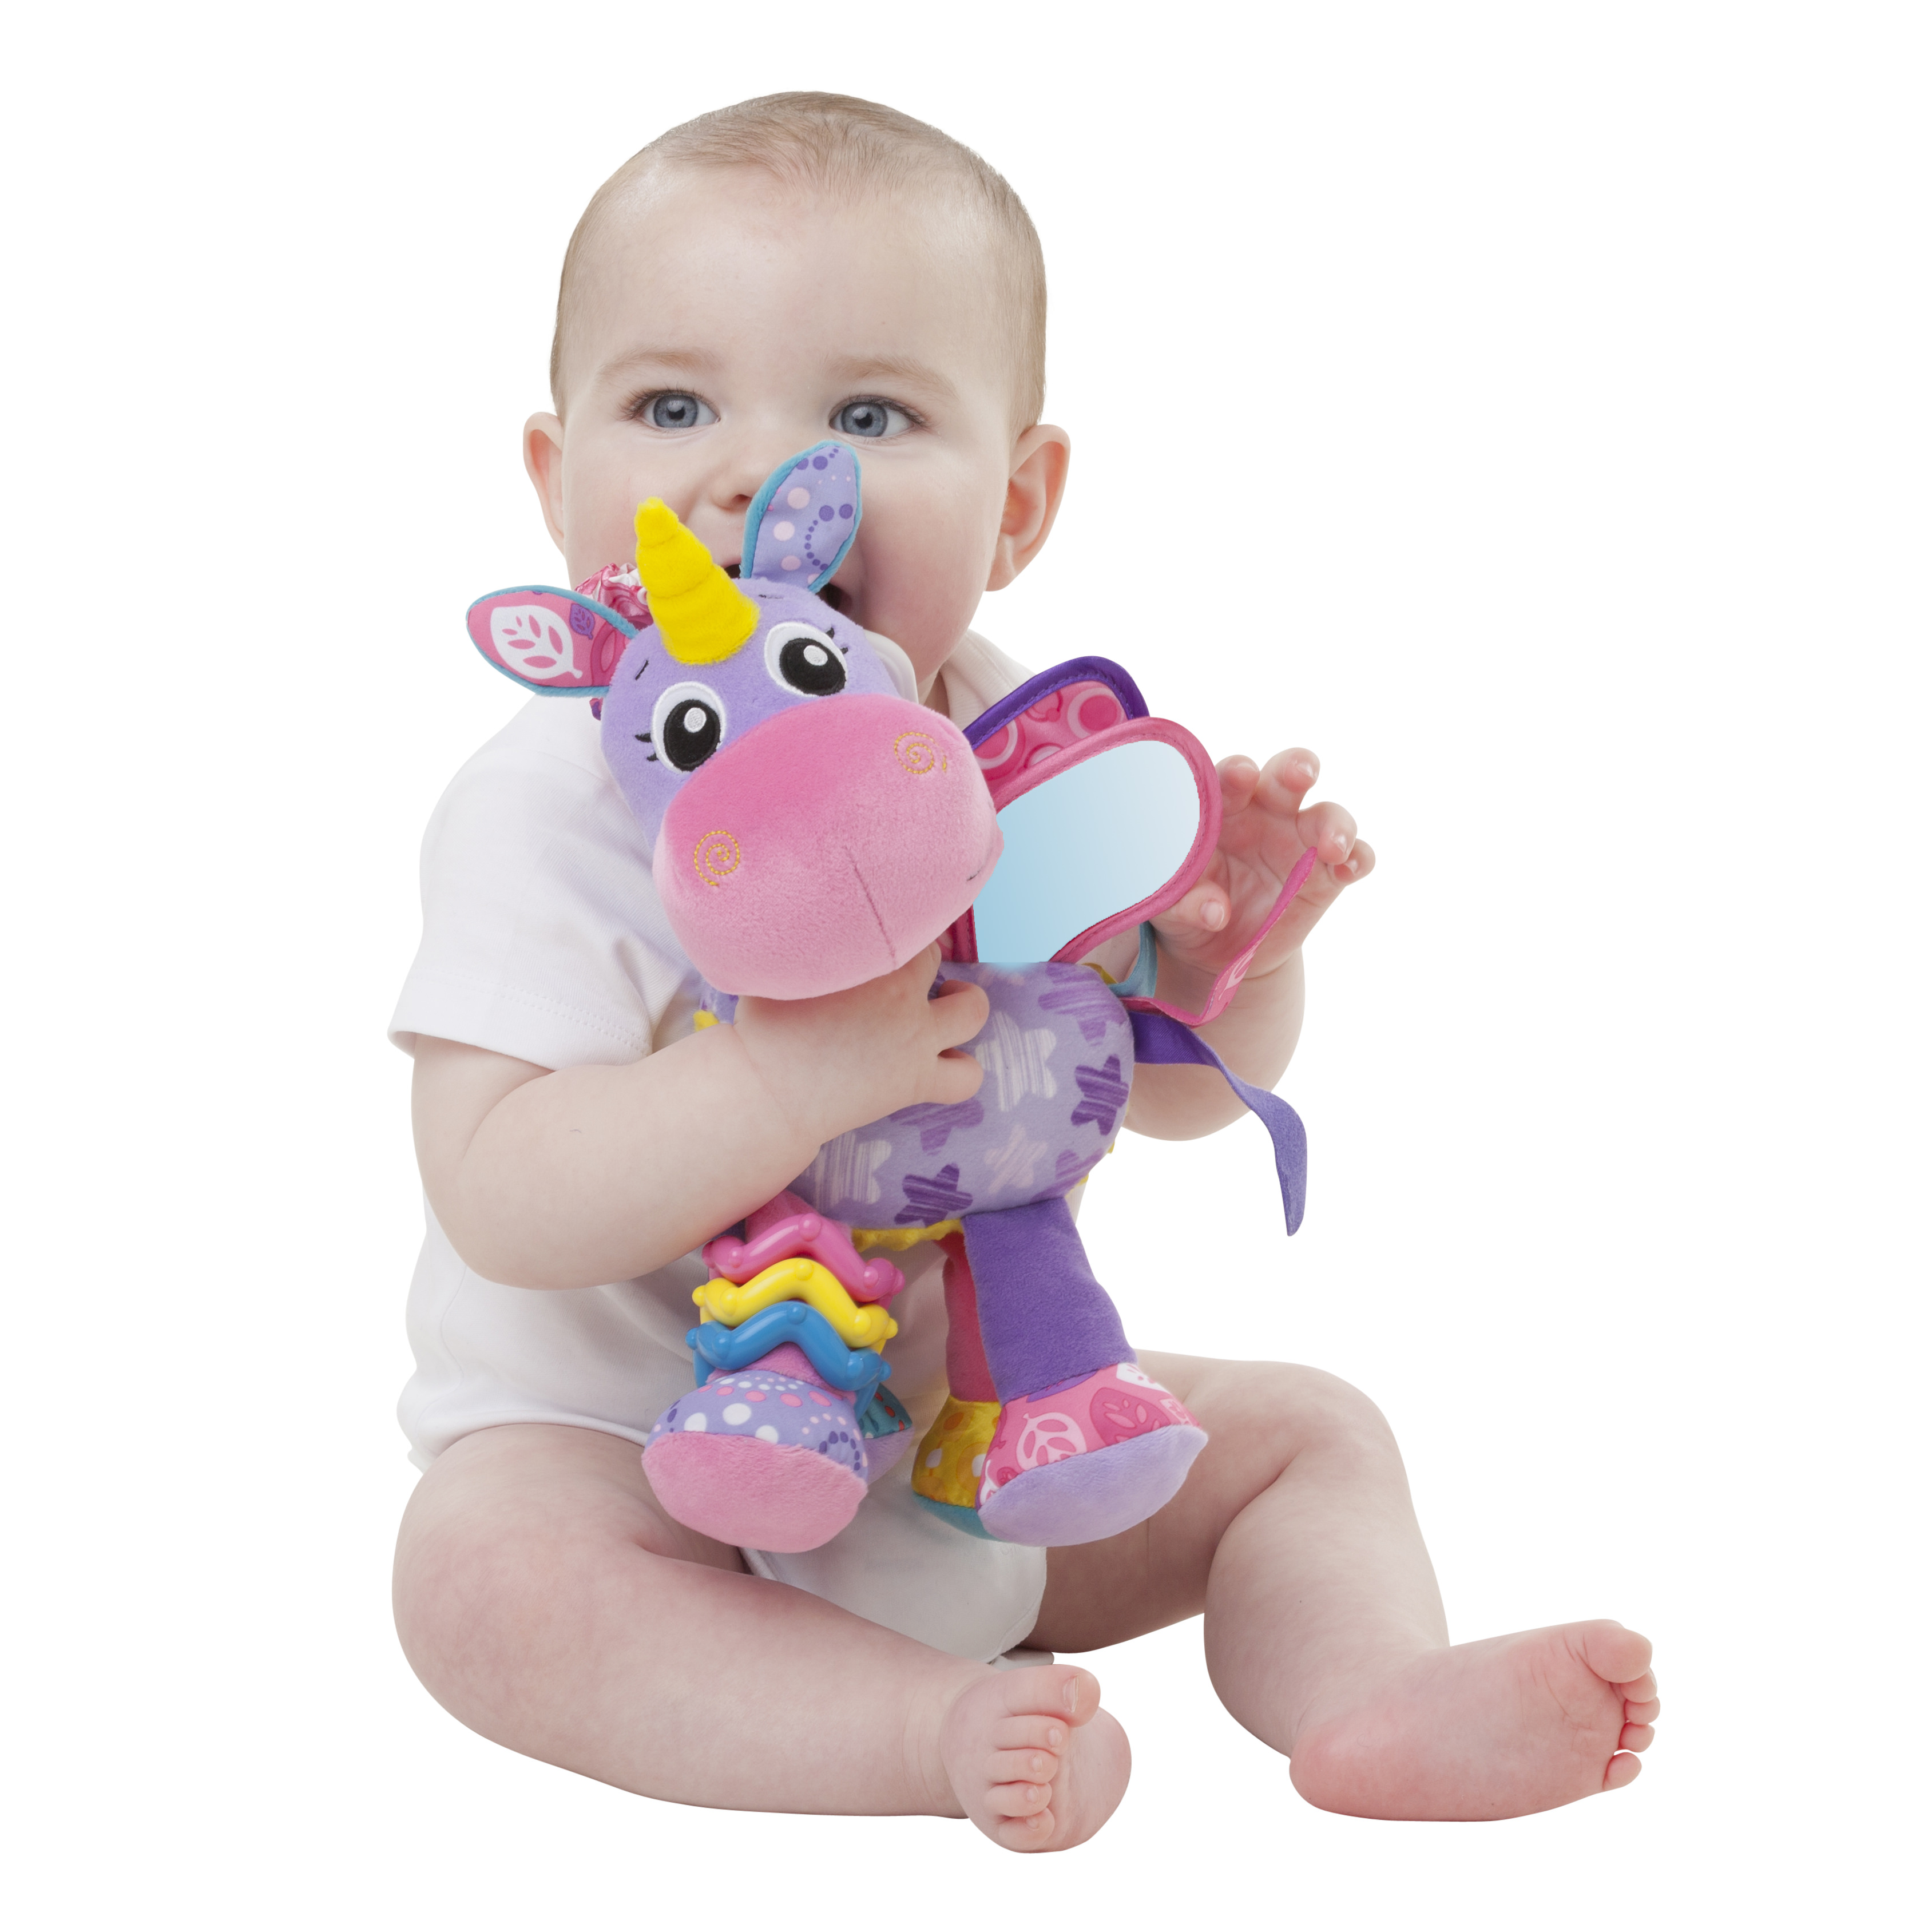 Playgro Baby Kid Child Soft Stuffed Toy Explore Sensory Colorful Turtle Doll Toy